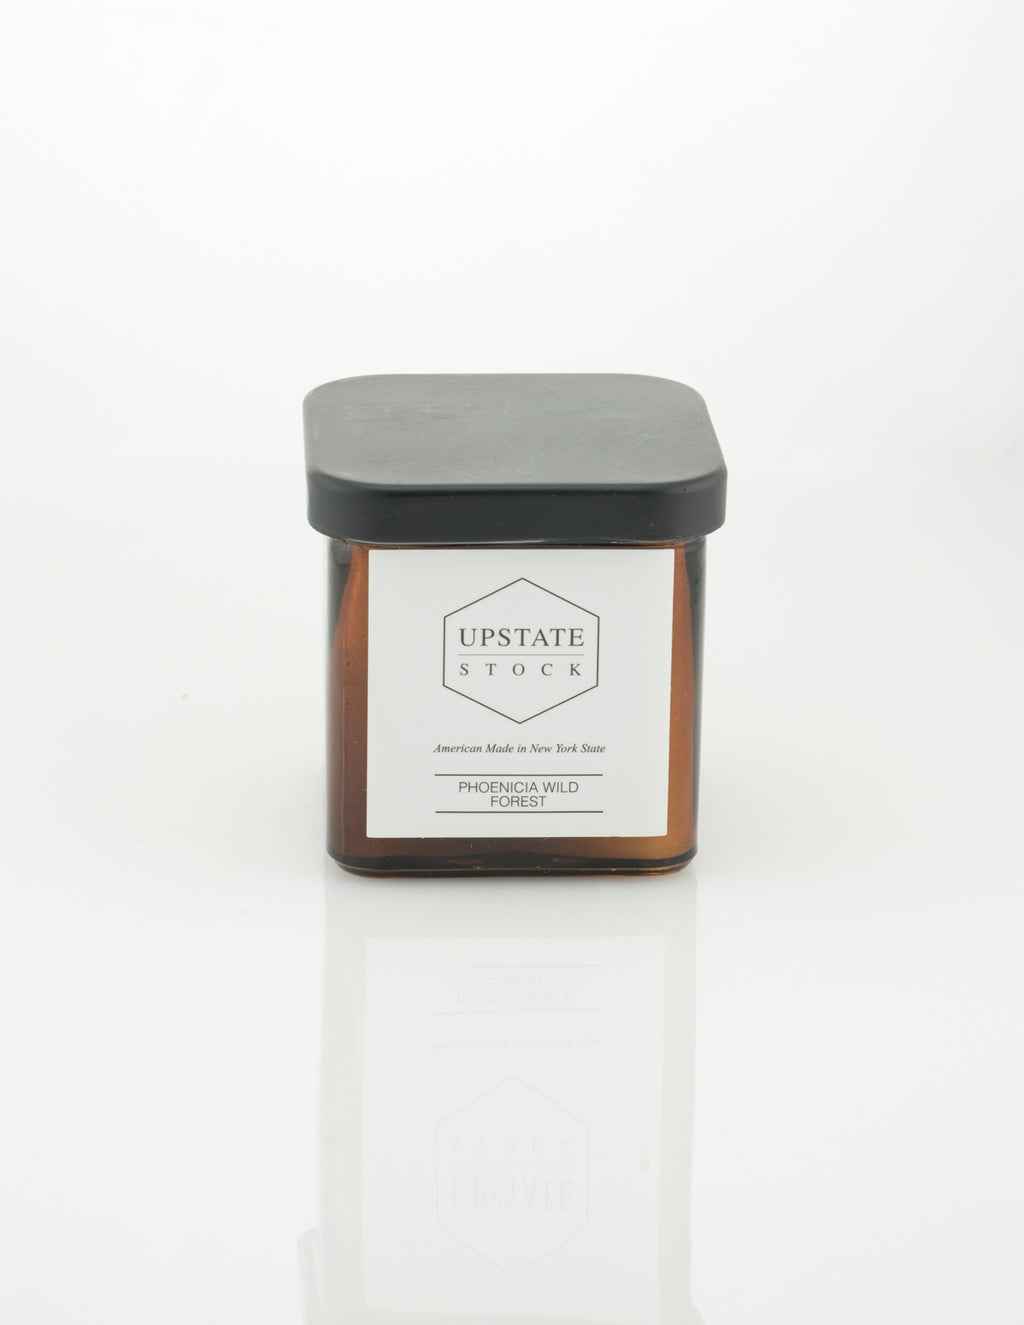 Upstate Stock - Phoenicia Wilds Candle